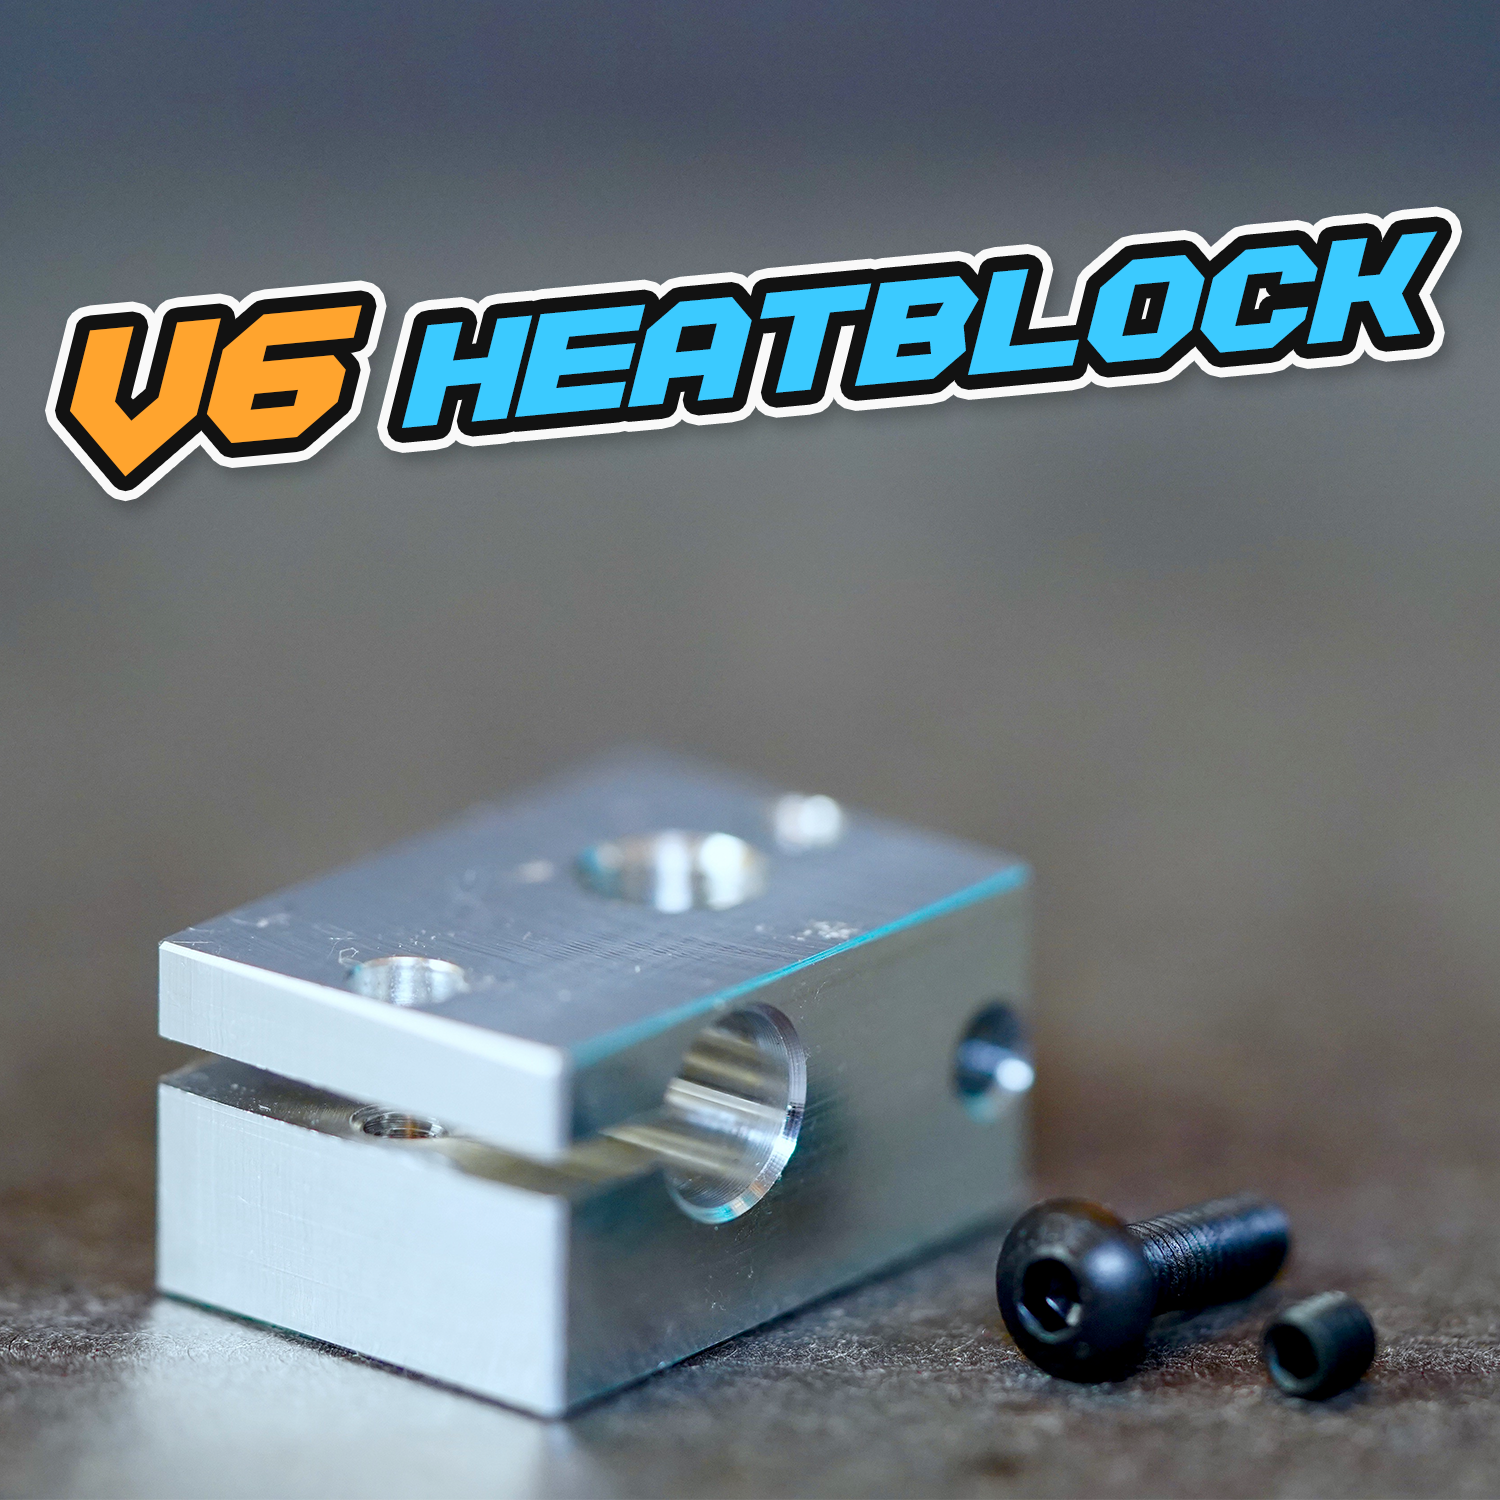 Heatblock V6 (z.B. Anycubic I3 Mega / Anycubic Chiron)